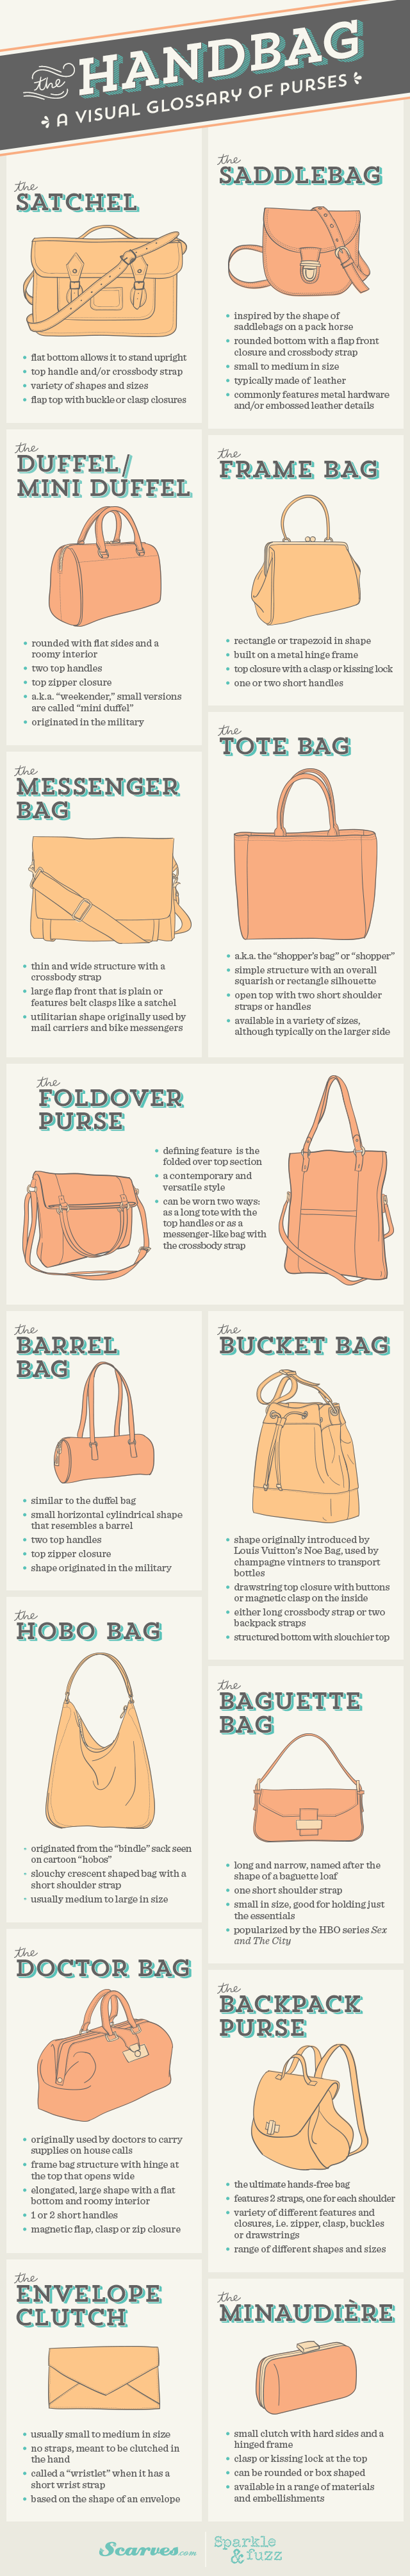 The Handbag: A Visual Glossary of Purses, Infographic